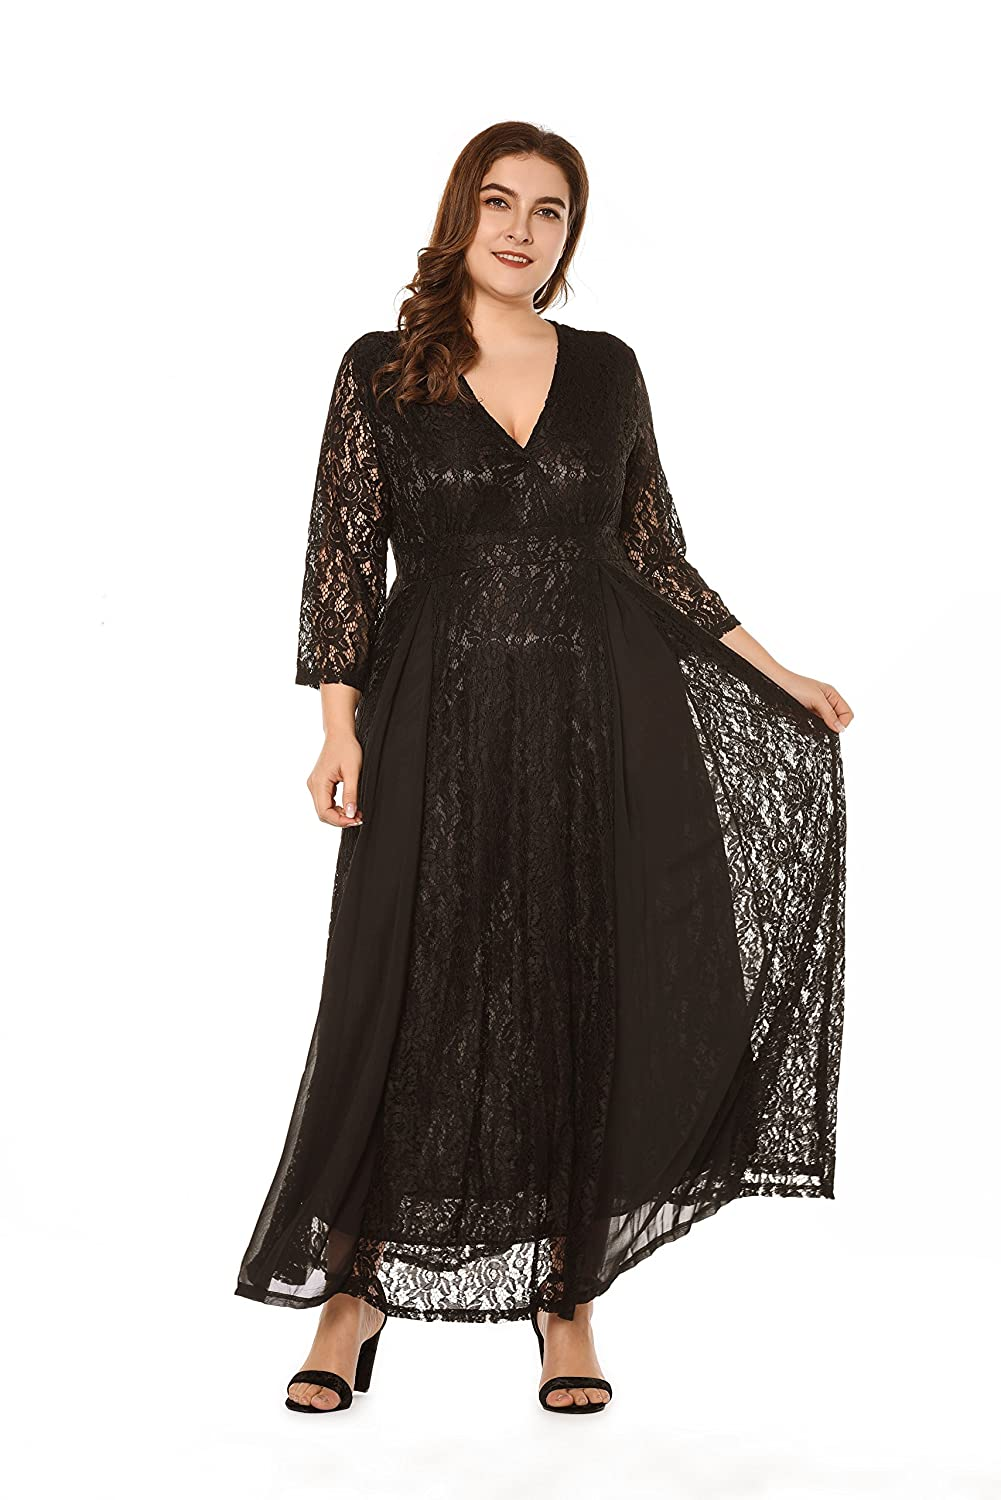 1940s Dresses | 40s Dress, Swing Dress YISIBIA Womens Plus Size Vintage Floral Lace Dress High Waist Party Wedding Flowy Maxi Dresses $30.99 AT vintagedancer.com